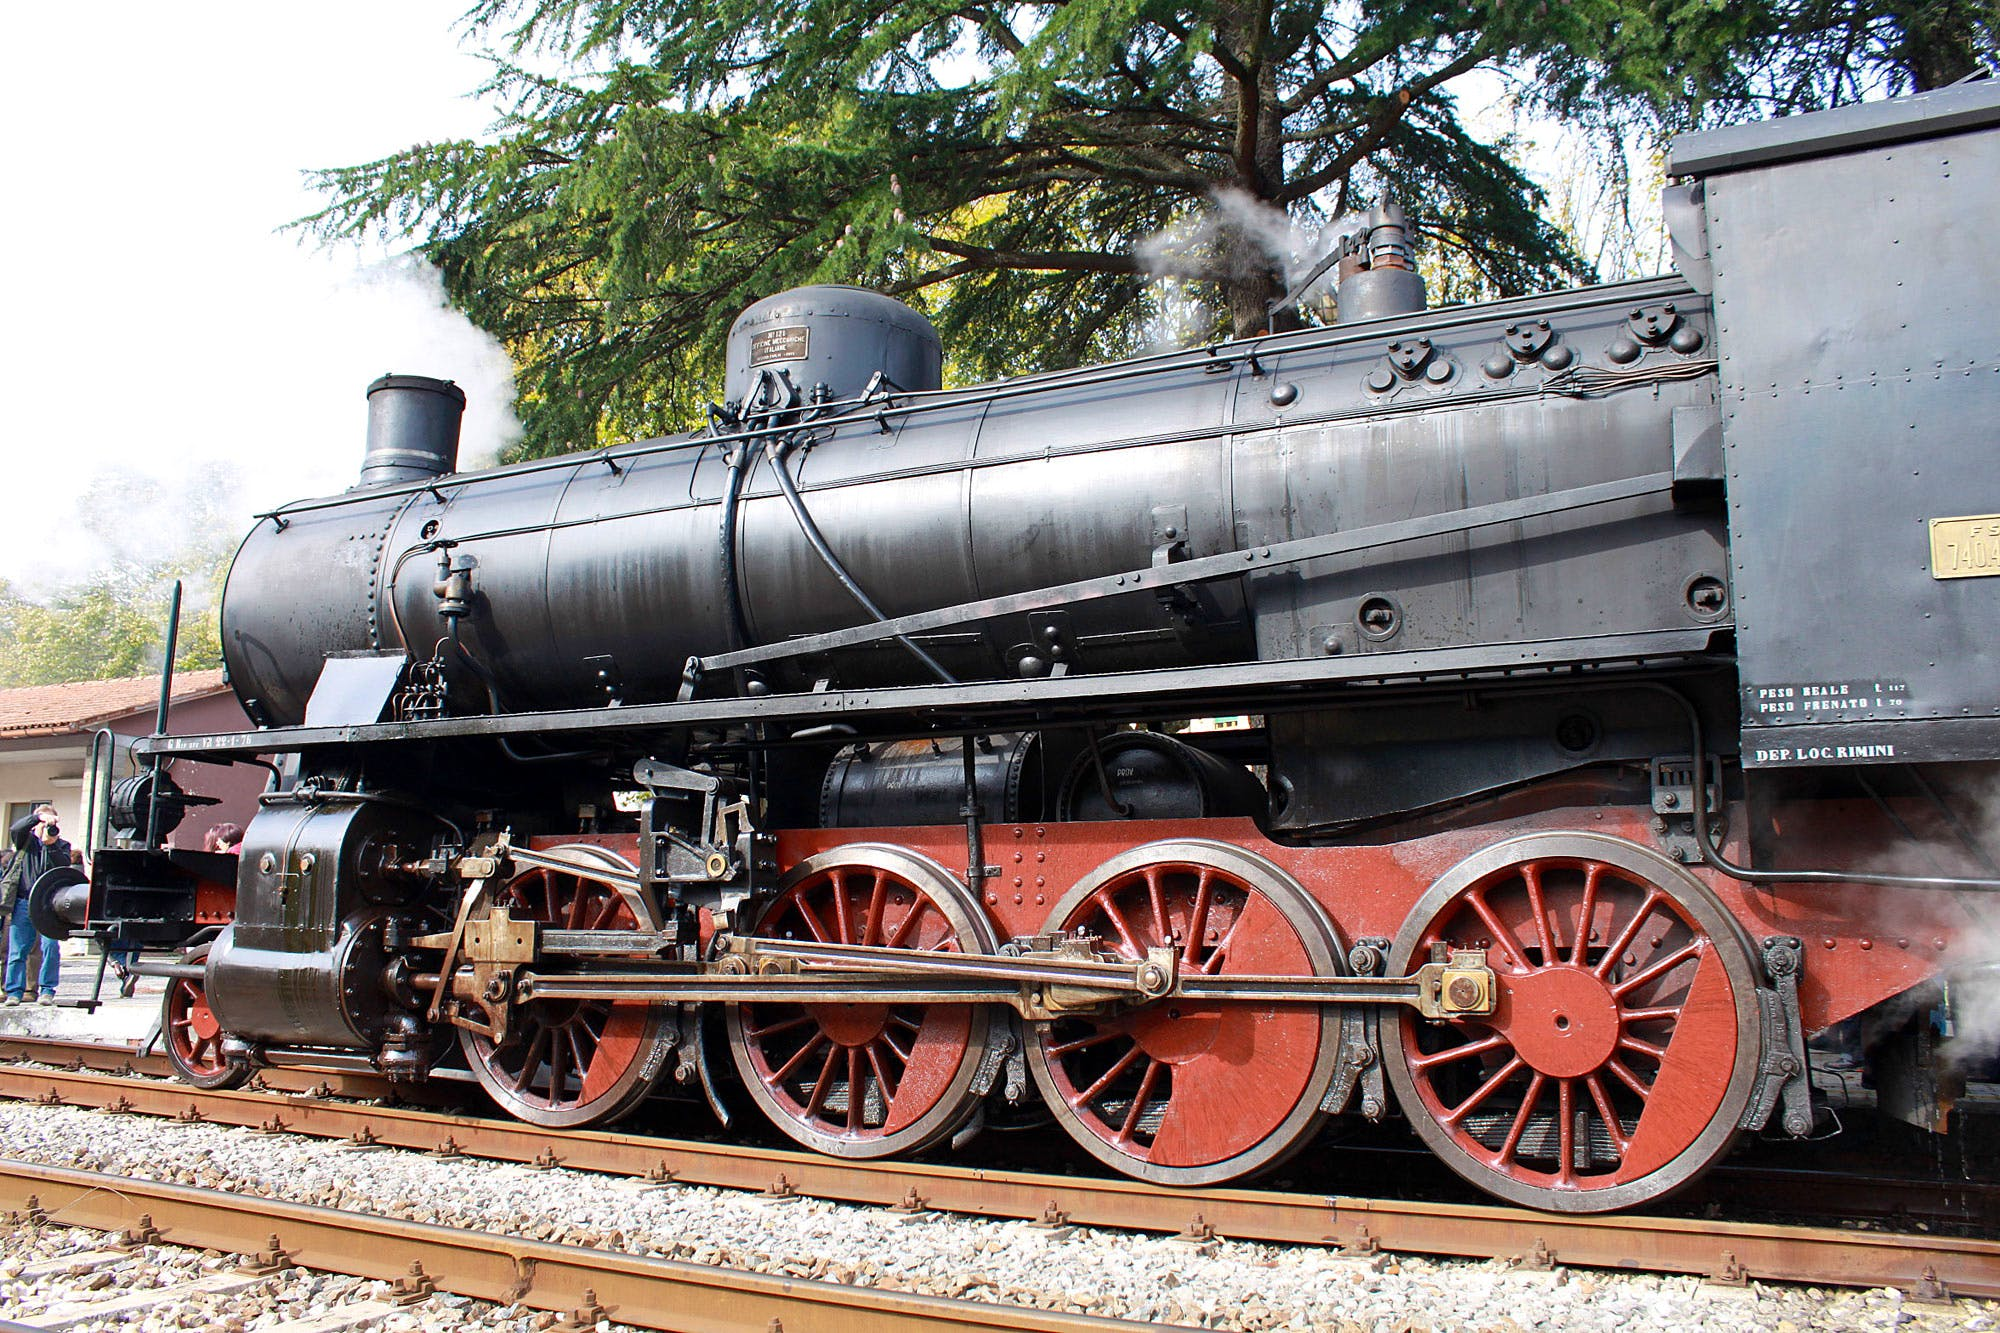 discover tuscany by old steam engine trains itineraries in steam